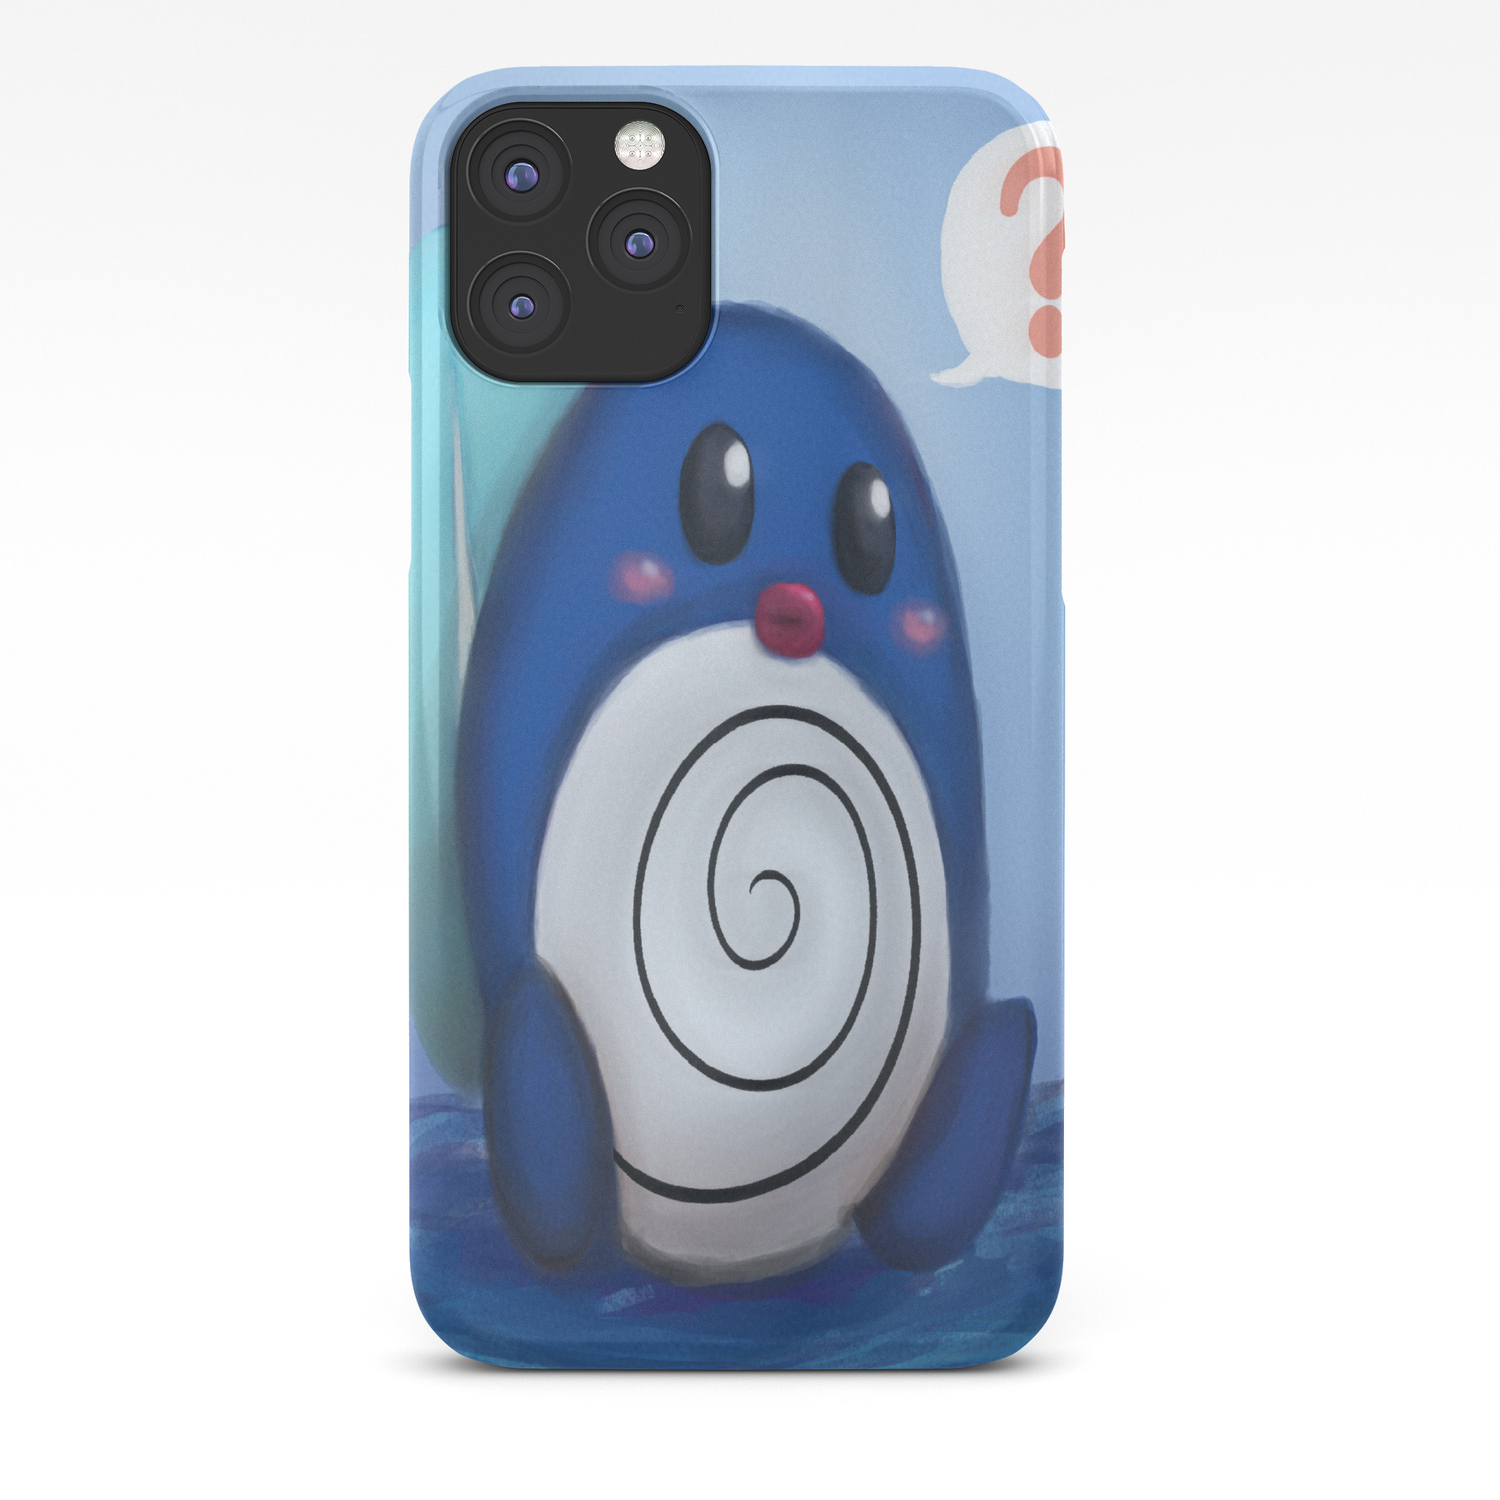 Poliwag iphone case